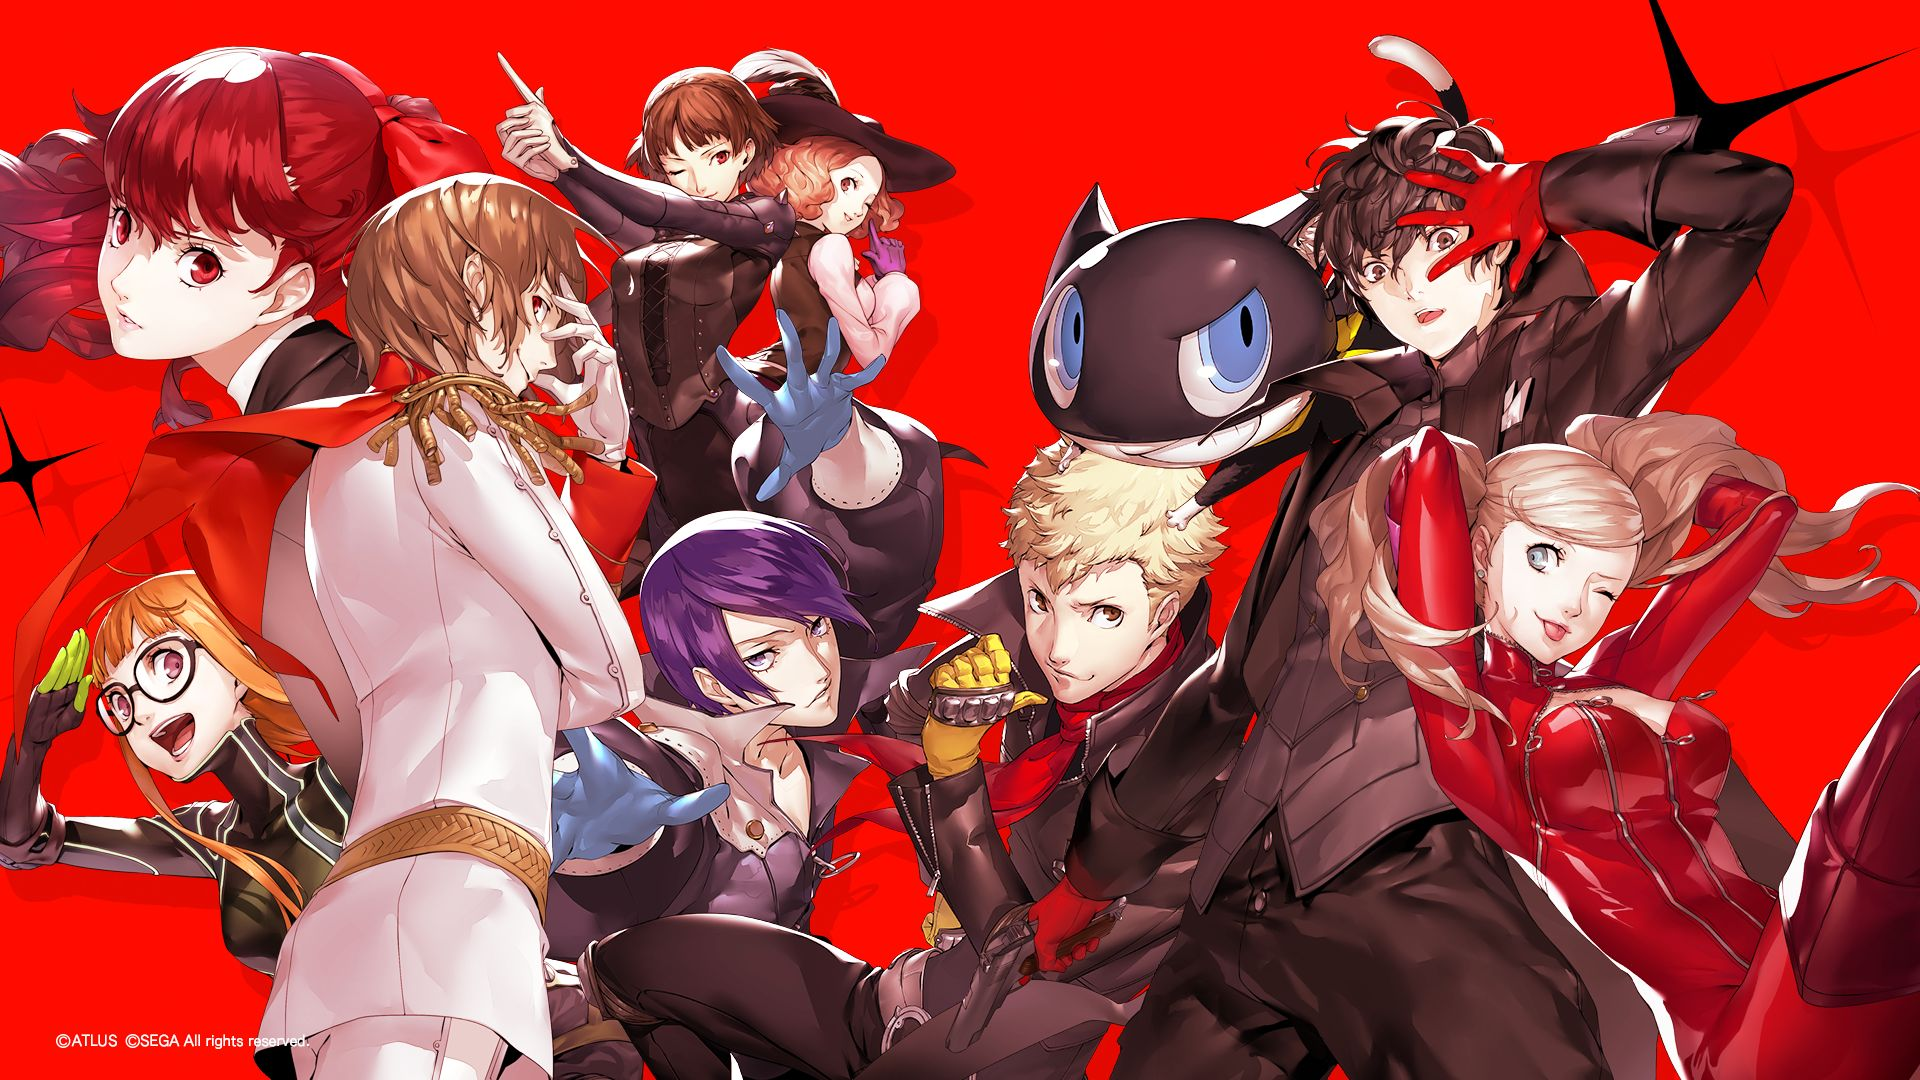 Pin by Oi Ling Wong on A-插畫001 in 2020 | Persona 5